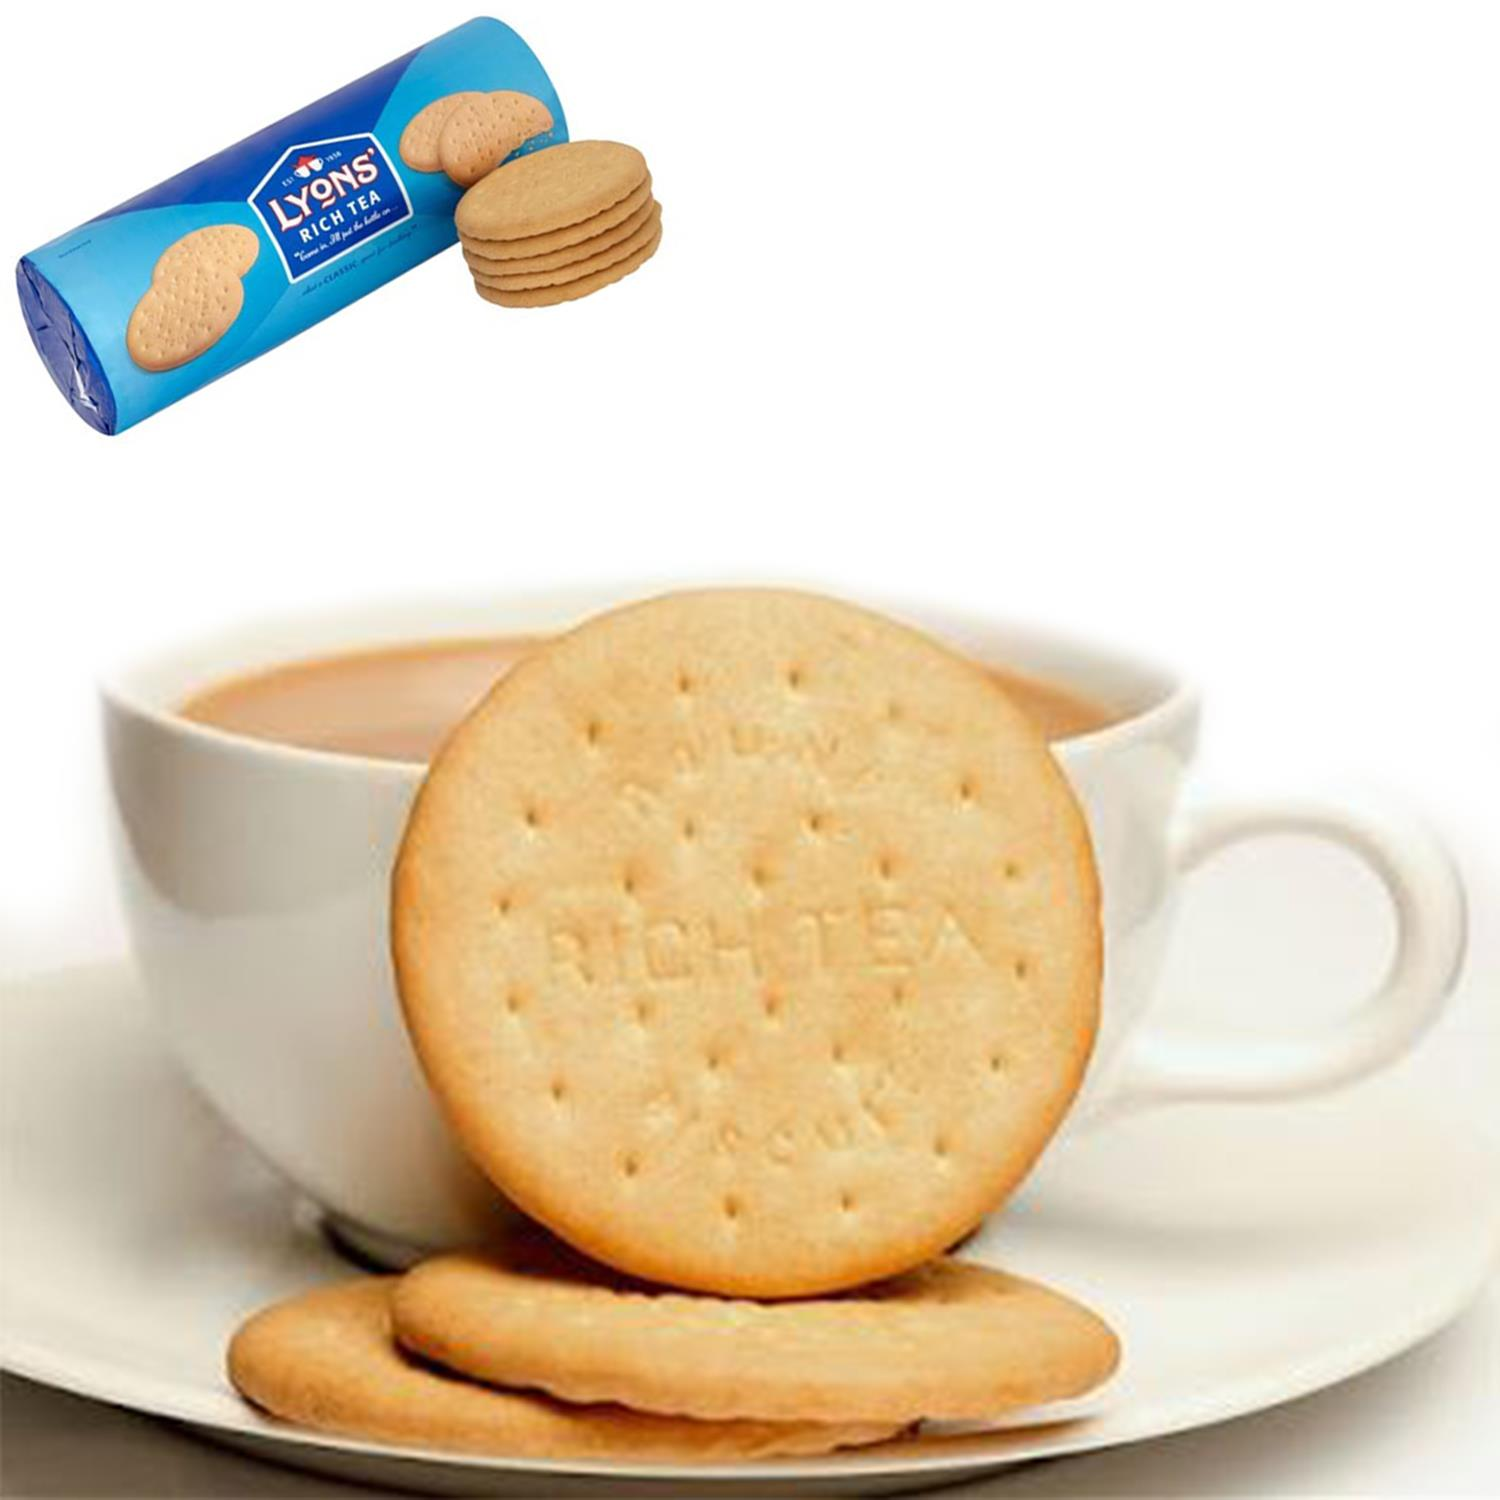 thumbnail 16 - Lyons Rich Tea Biscuits 300g, Great for a morning or afternoon snack